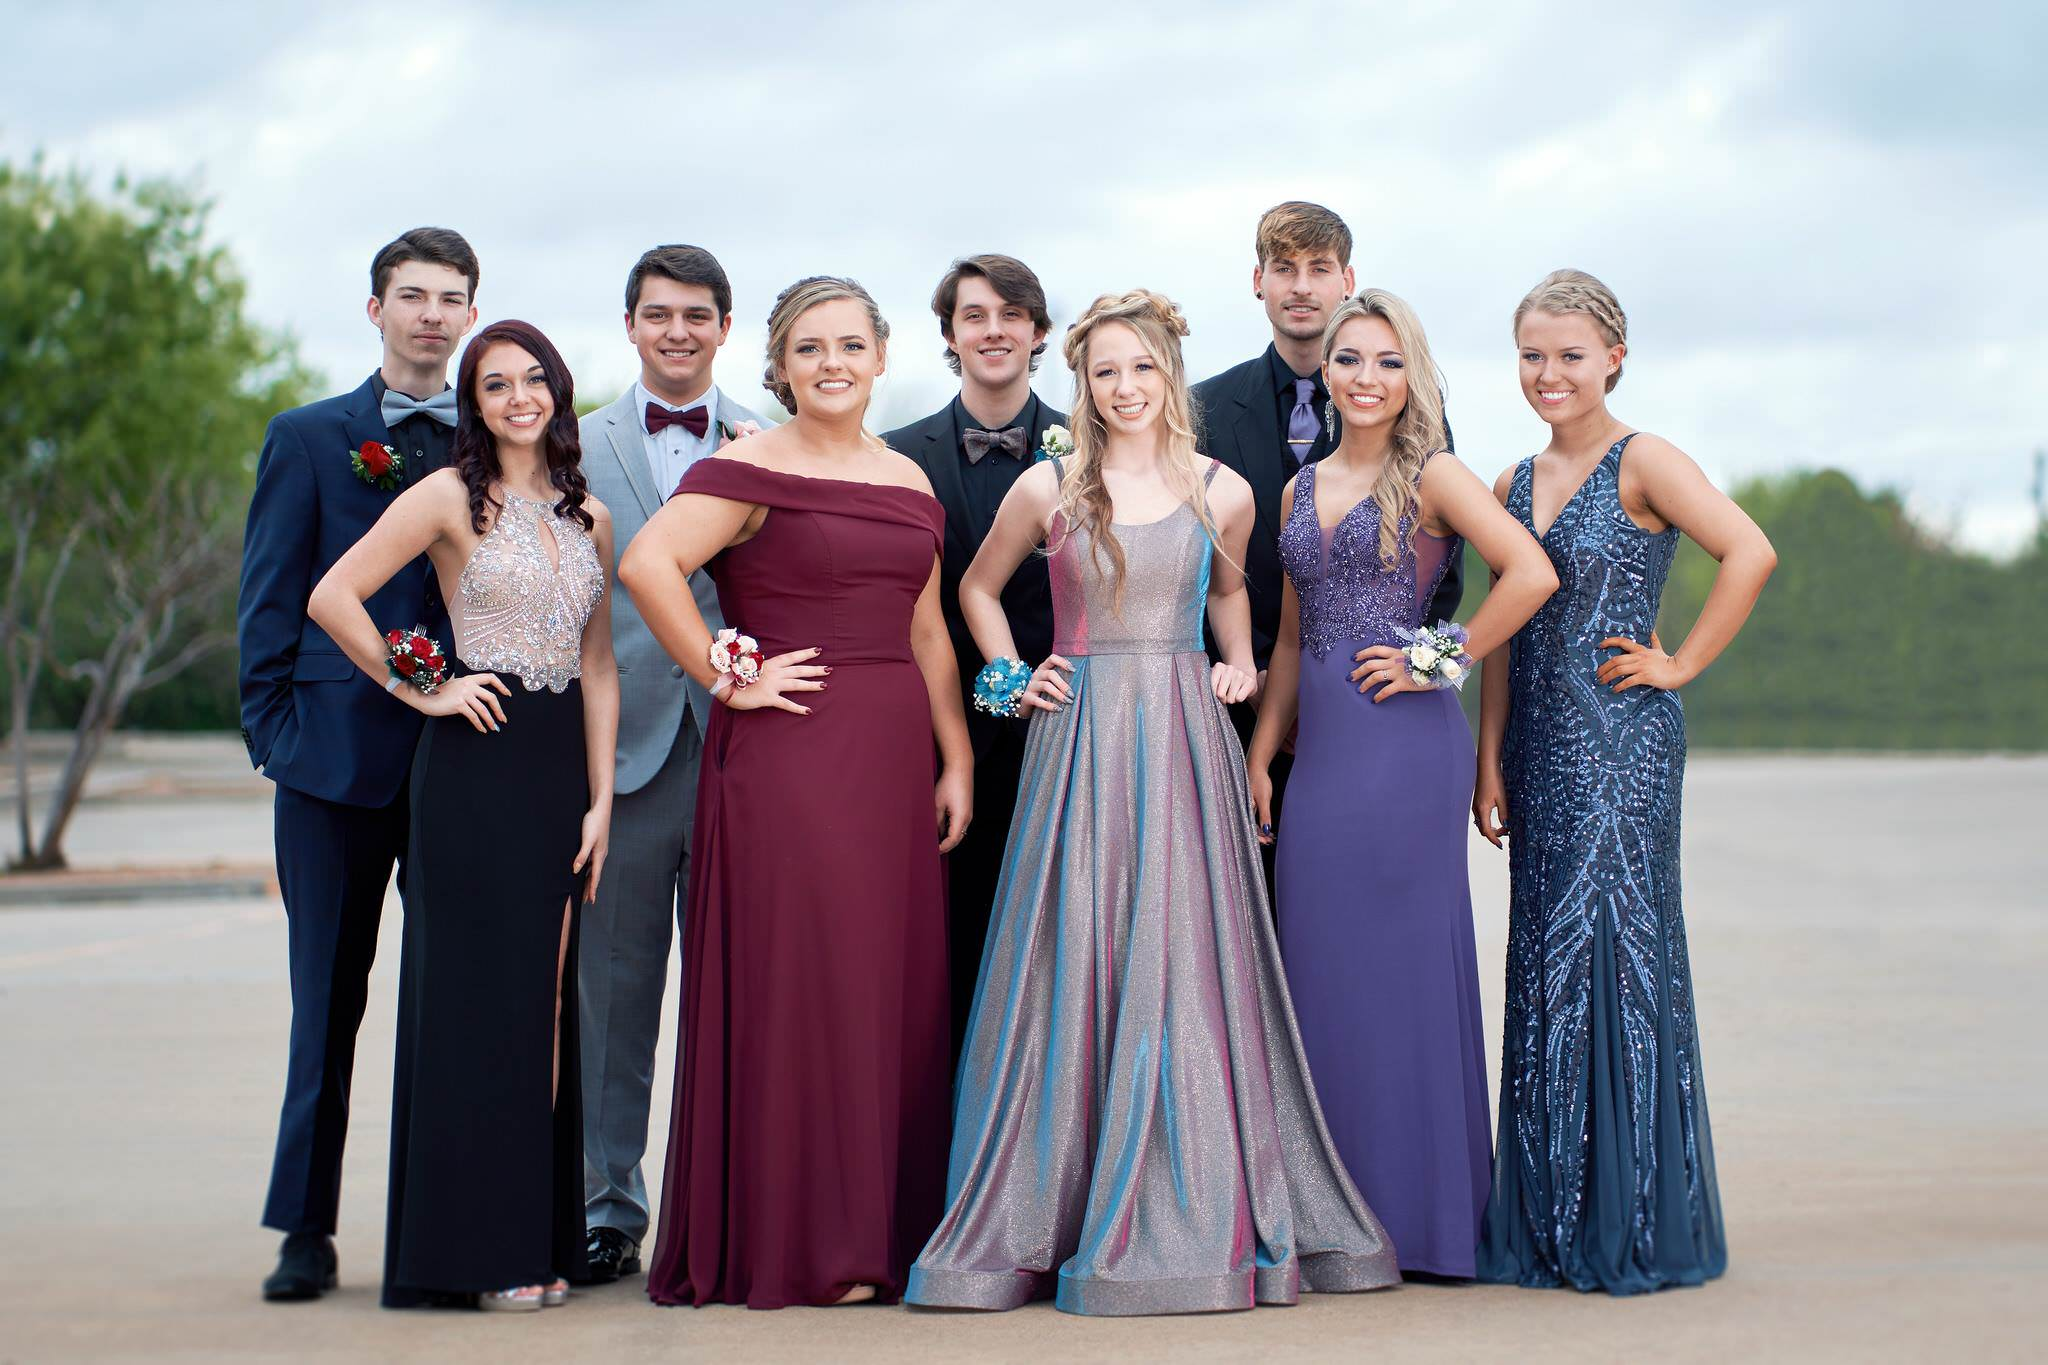 Prom pictures 2019 #7